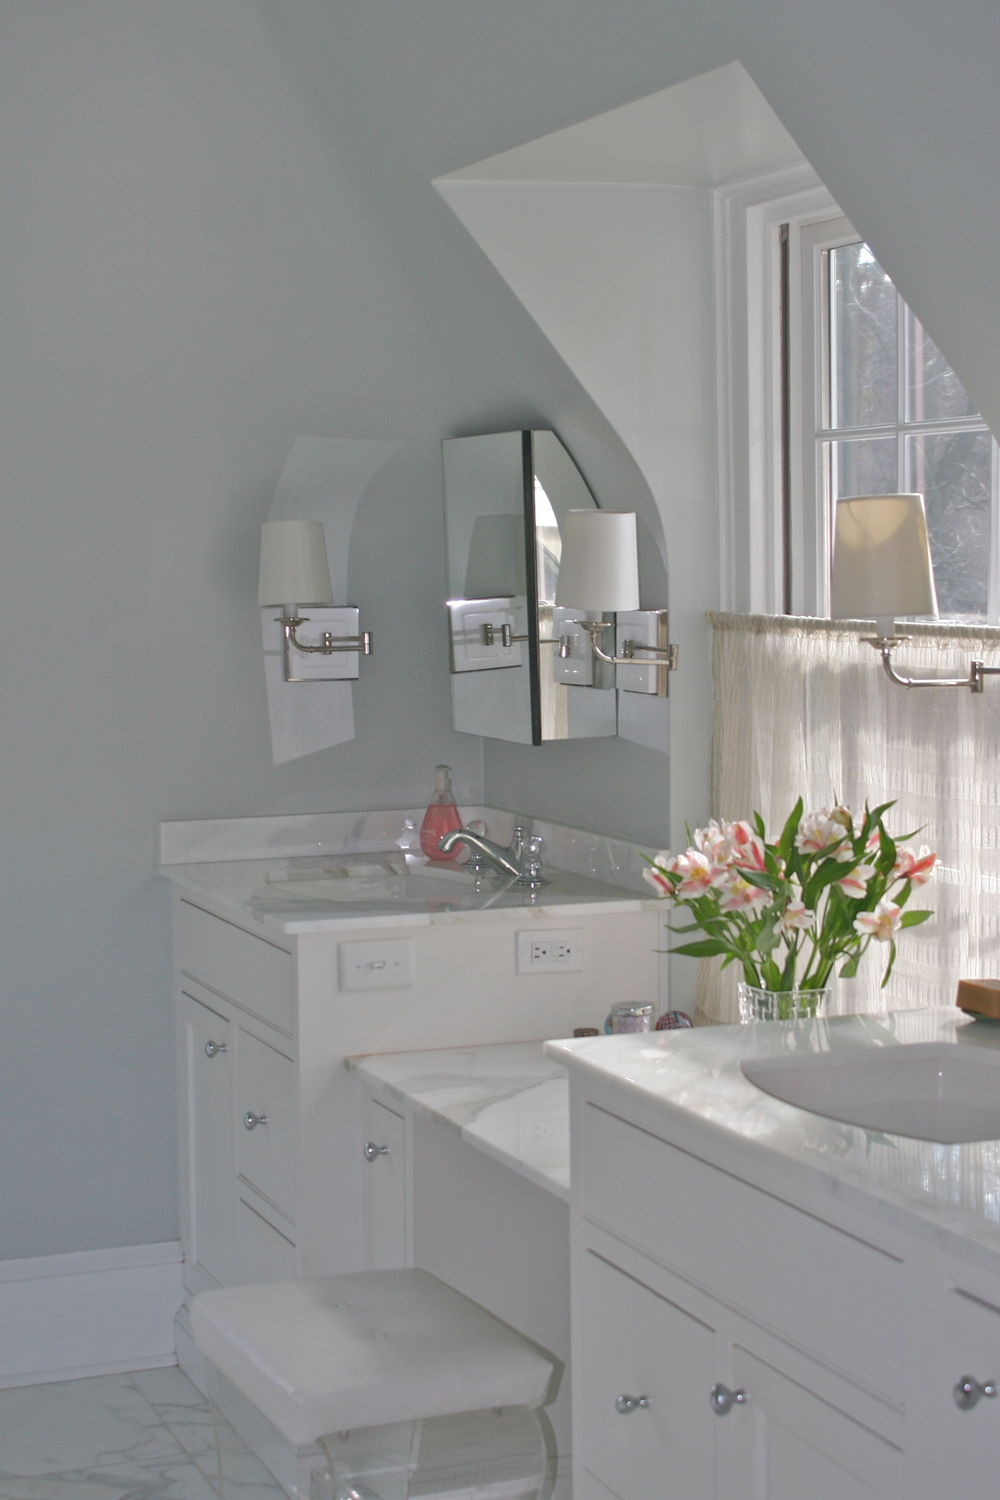 His and hers sinks and vanity